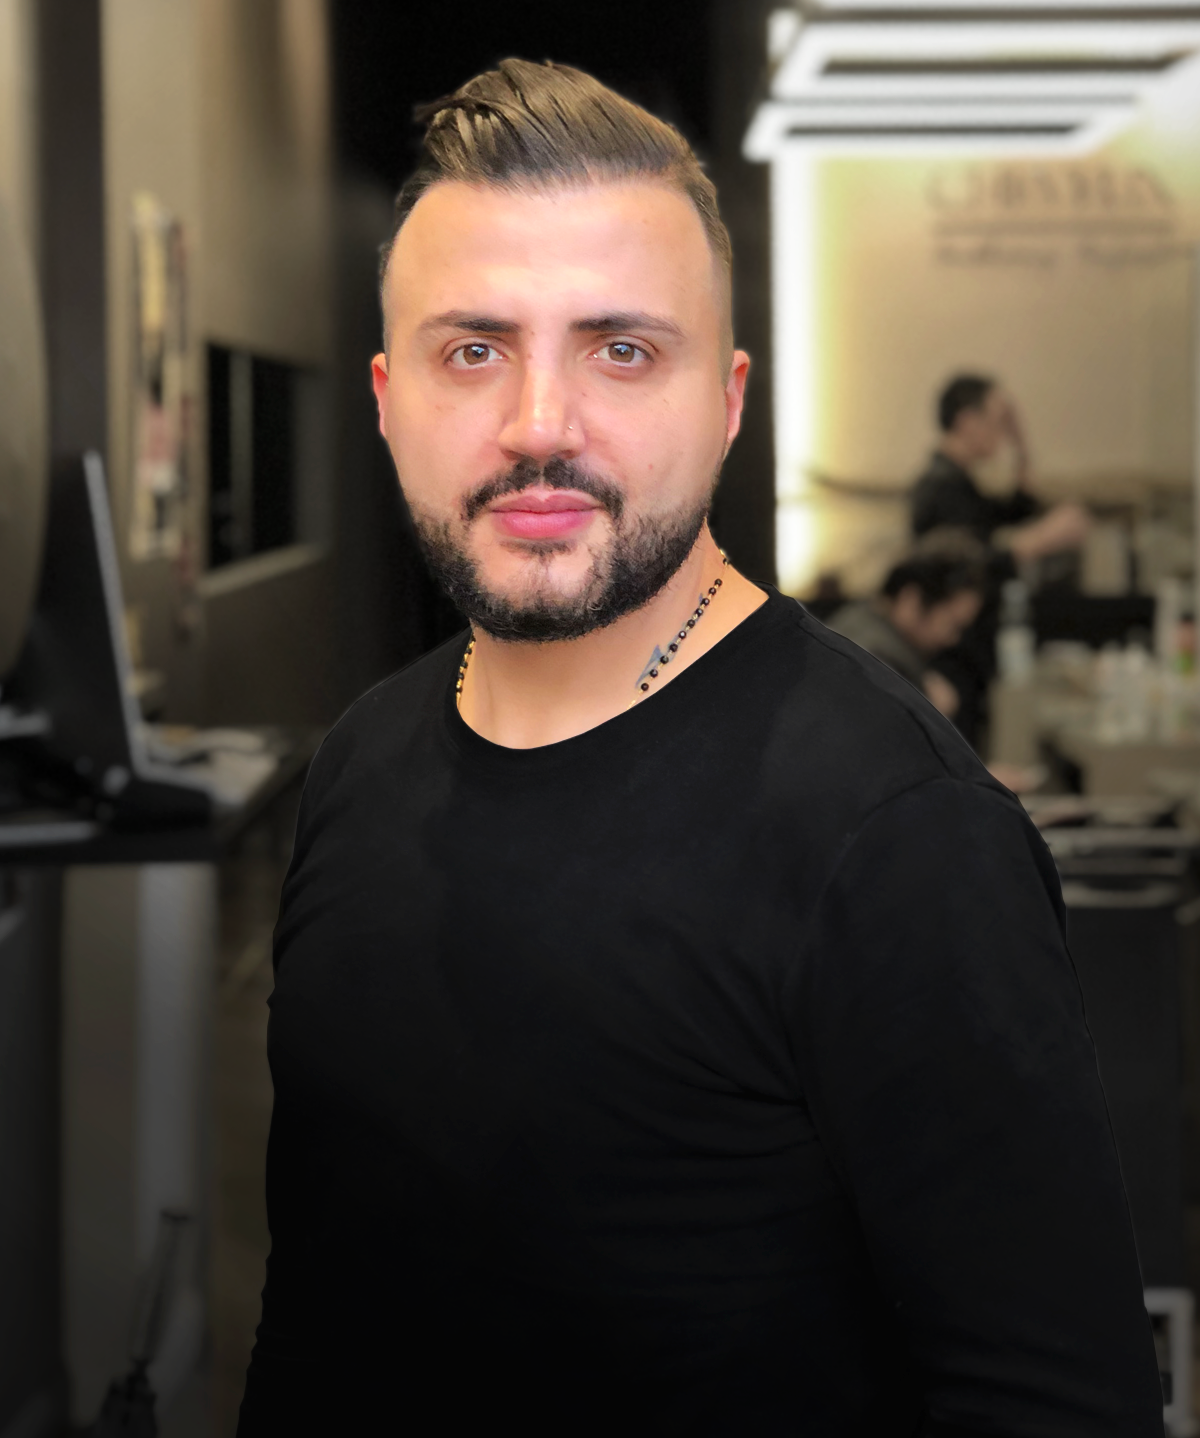 ANTHONY, Salon owner & Principal  Anthony Anjoul's 22 years of experience has helped him master the art of contemporary hair style, colour and style cuts. His passion have been a great draw card for all types of clients. He along with his salon have lead the way in winning Best Salon of Parramatta two years straight (2016 & 2017) and runner up again in 2018.